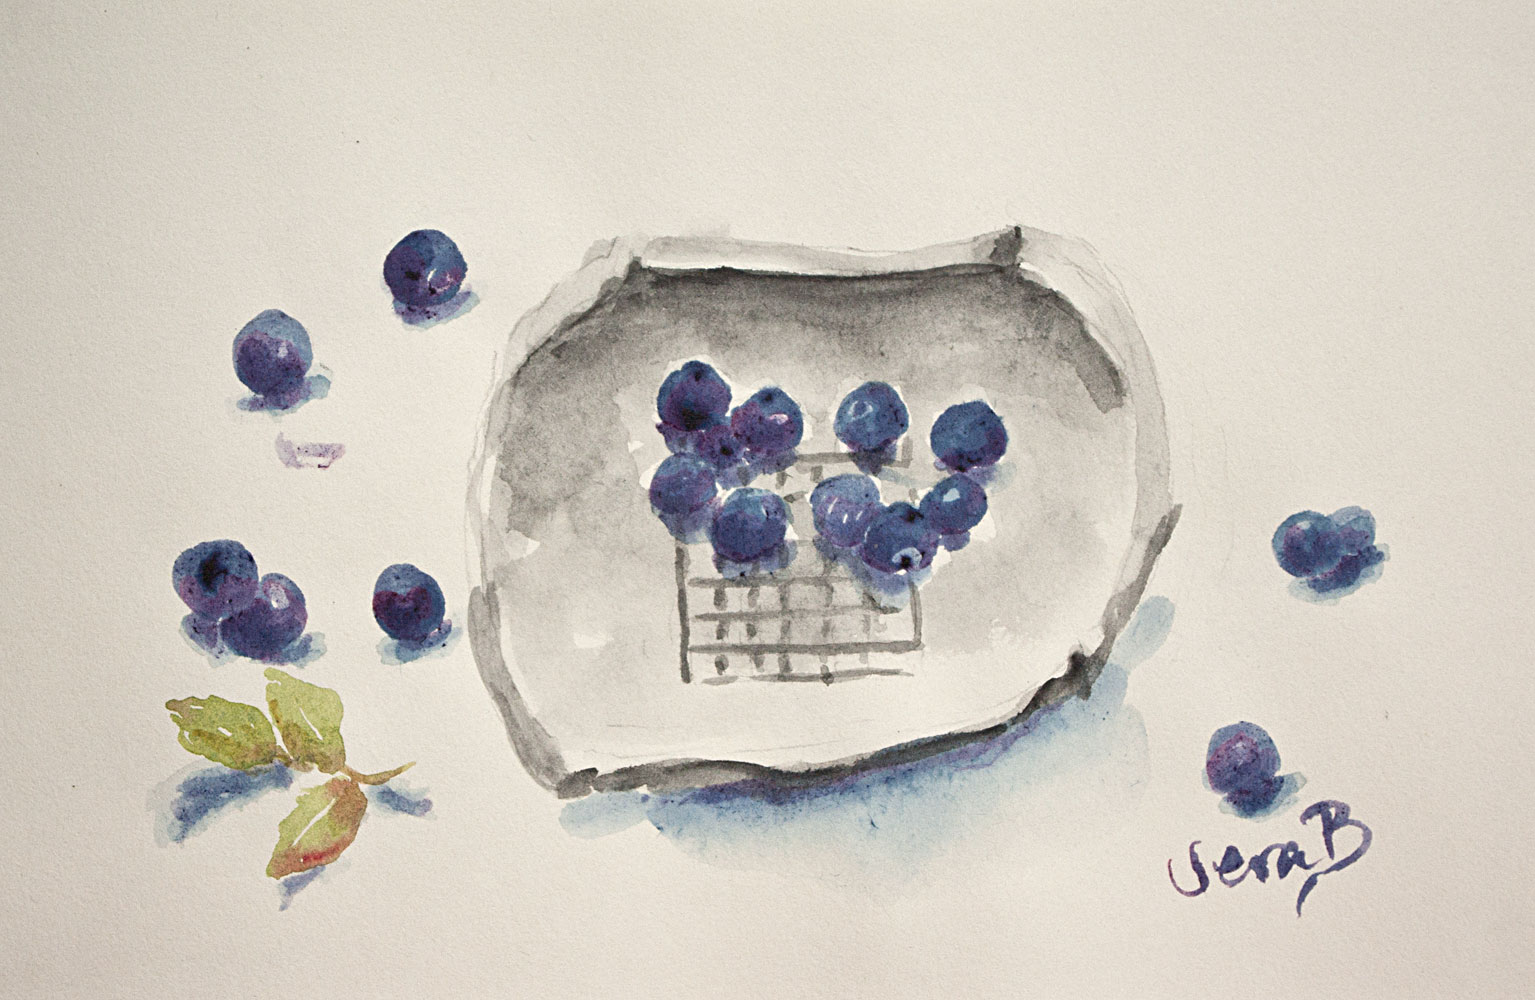 "Blue berry still life sketch. Painted with fresh juice from blueberries. 12x20 cm (4,8x8"") on acid free sketchbook paper. 2016. SOLD"